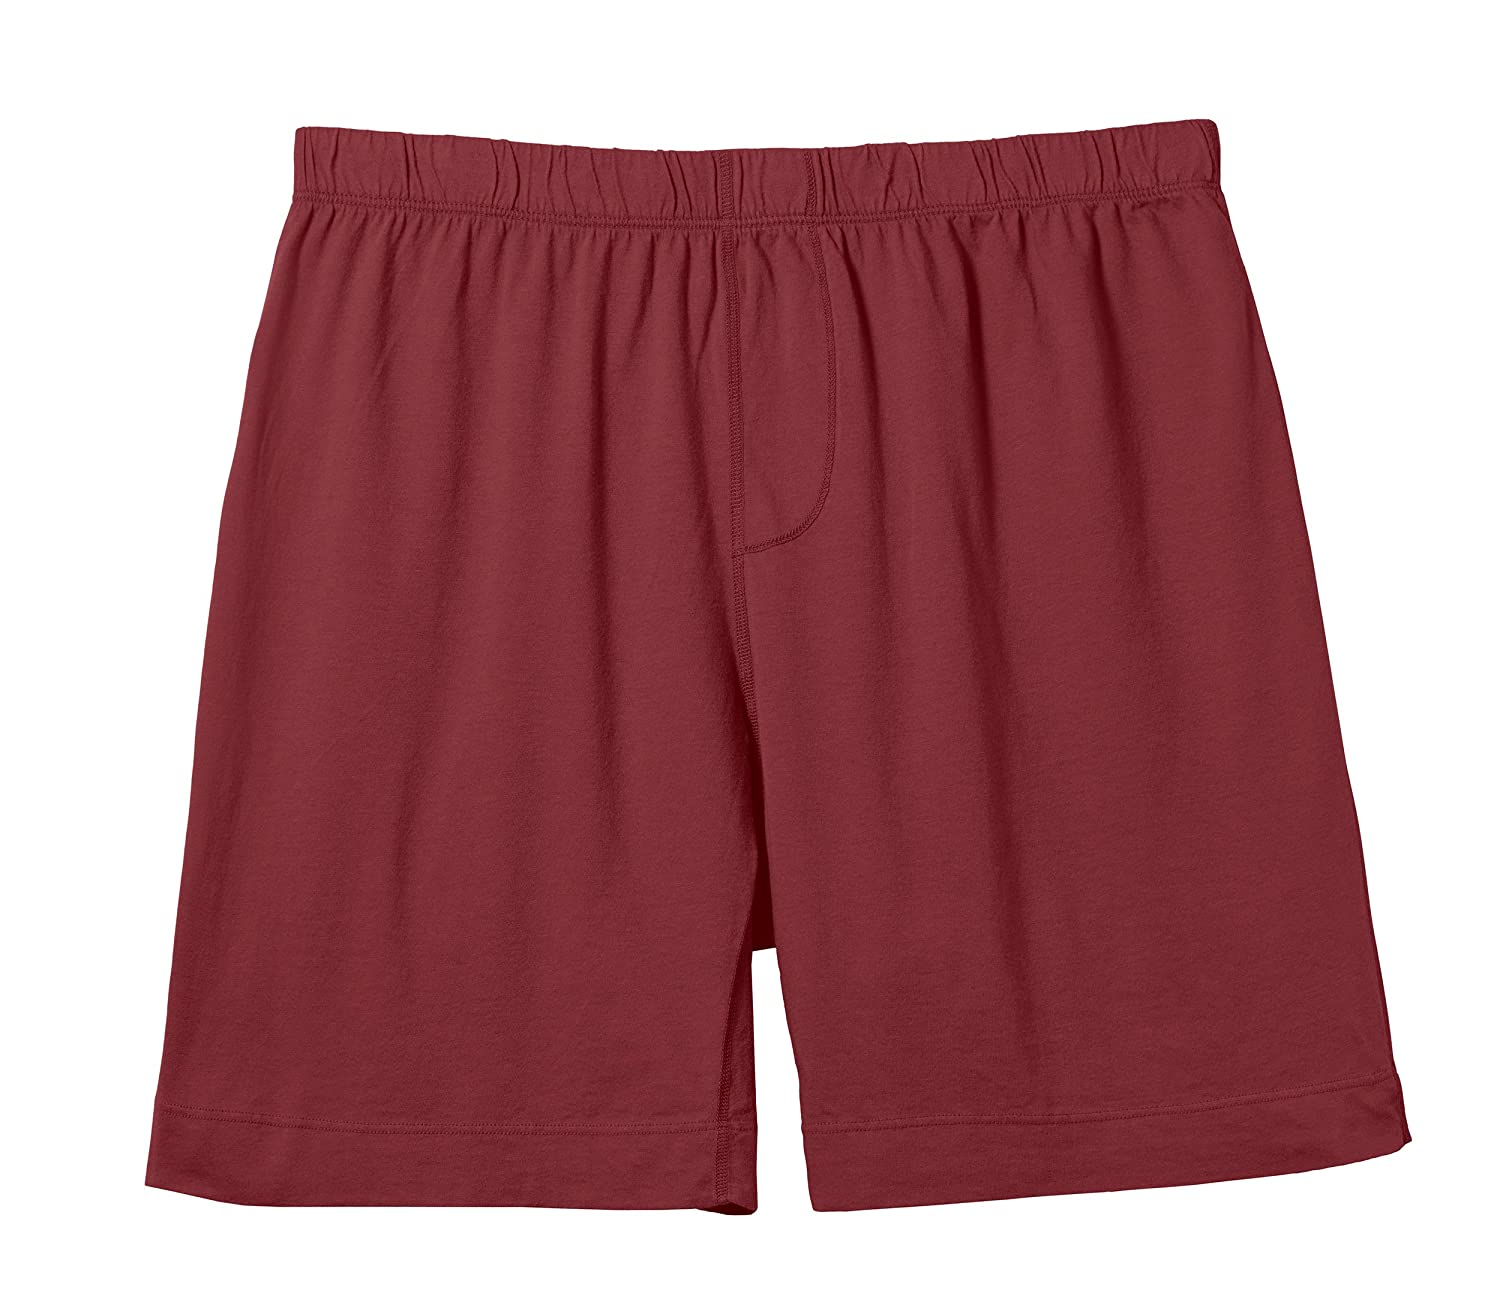 City Threads Boys Cooling Boxer Shorts Underwear, 100% Cotton for Sensitive Skin SPD, Made in The USA CT-BOYJBOXERS